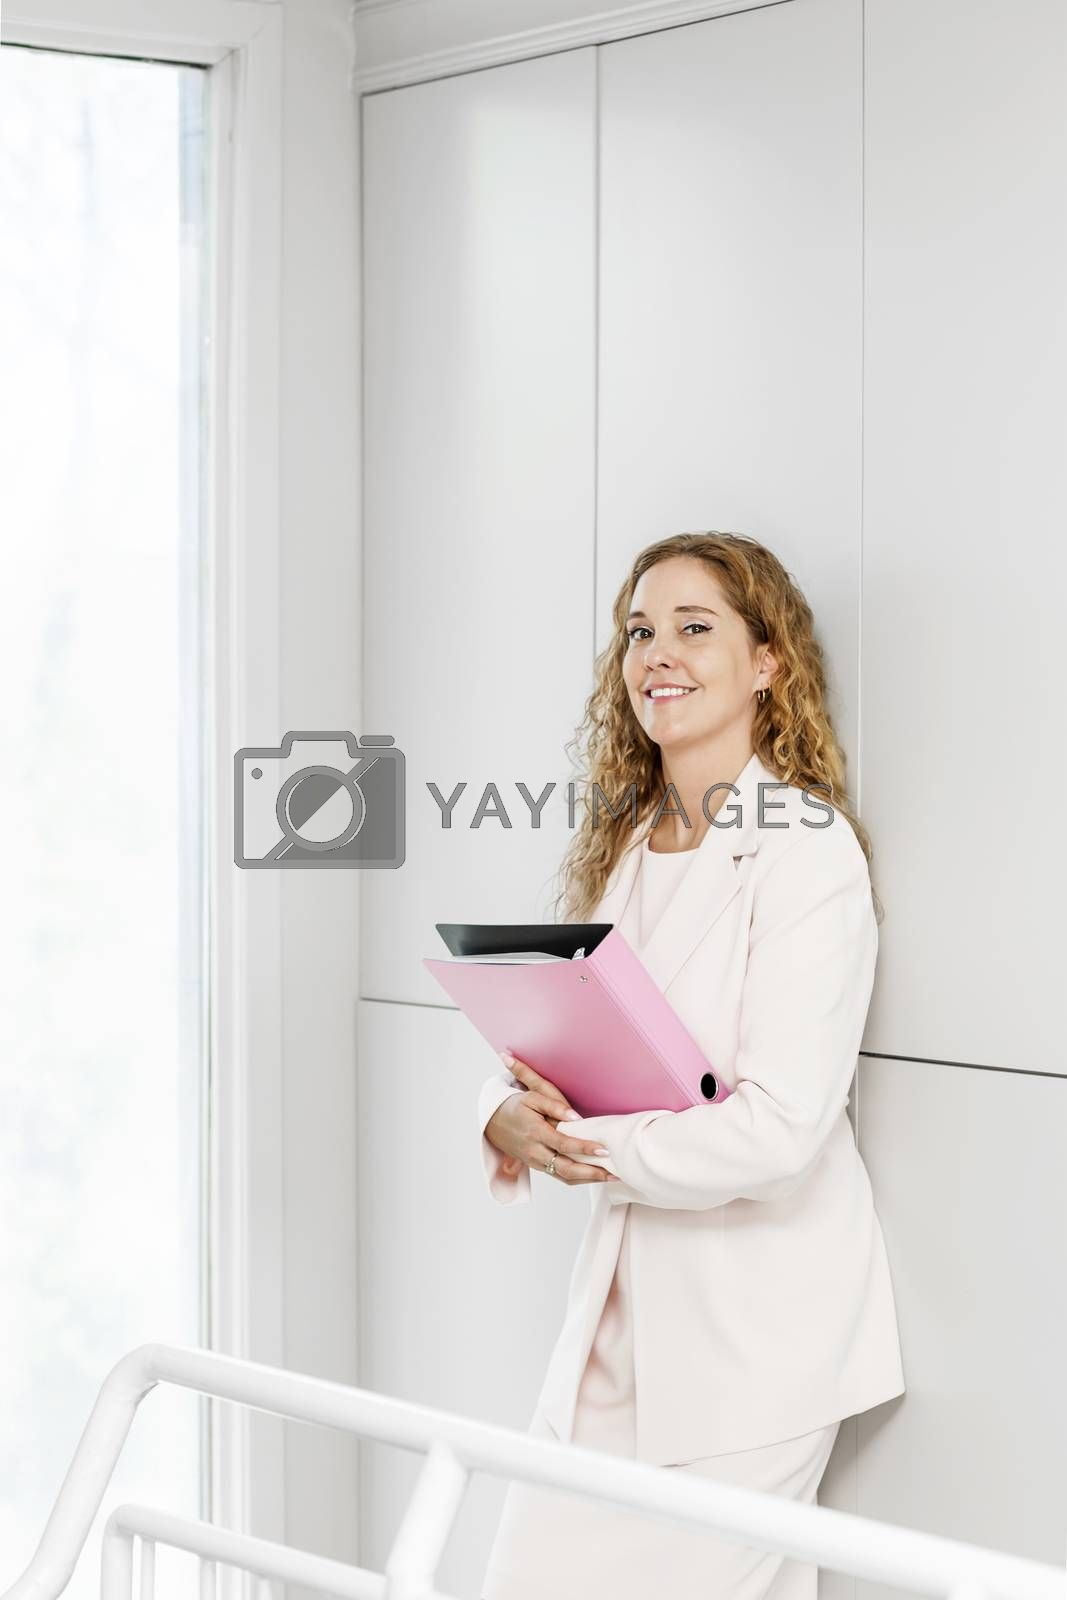 Confident career business woman standing in office hallway holding binder